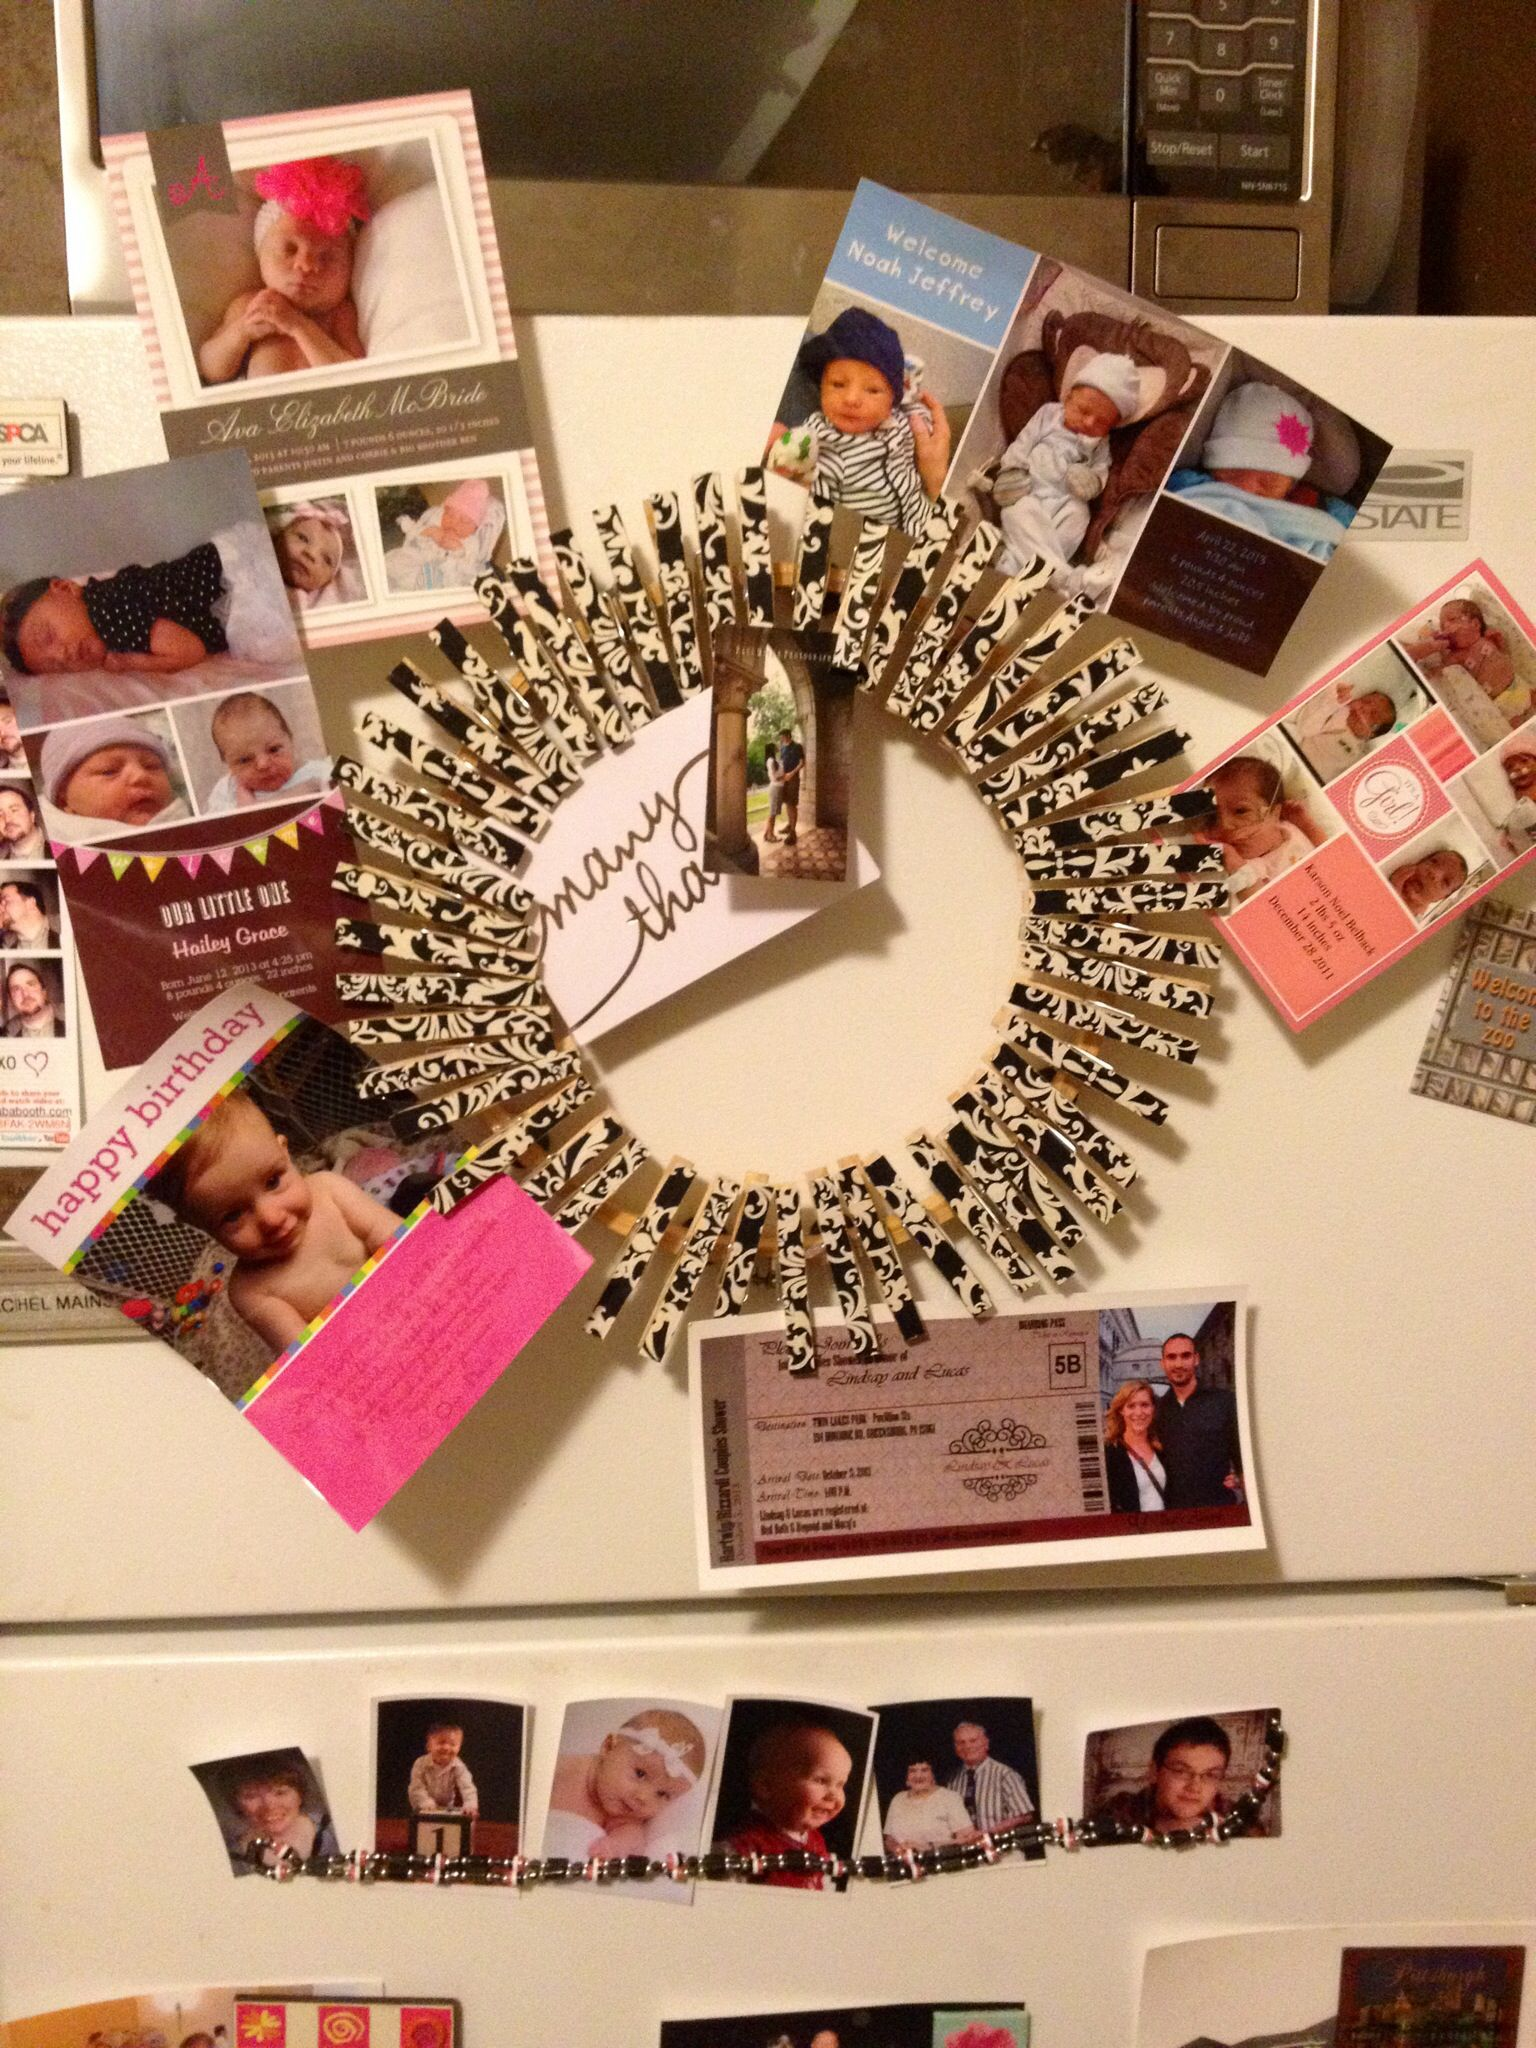 Mod podged wrapping paper to clothes pins then  hot glued to wreath. Added magnets for organization of the fridge. All of those cute baby announcements.